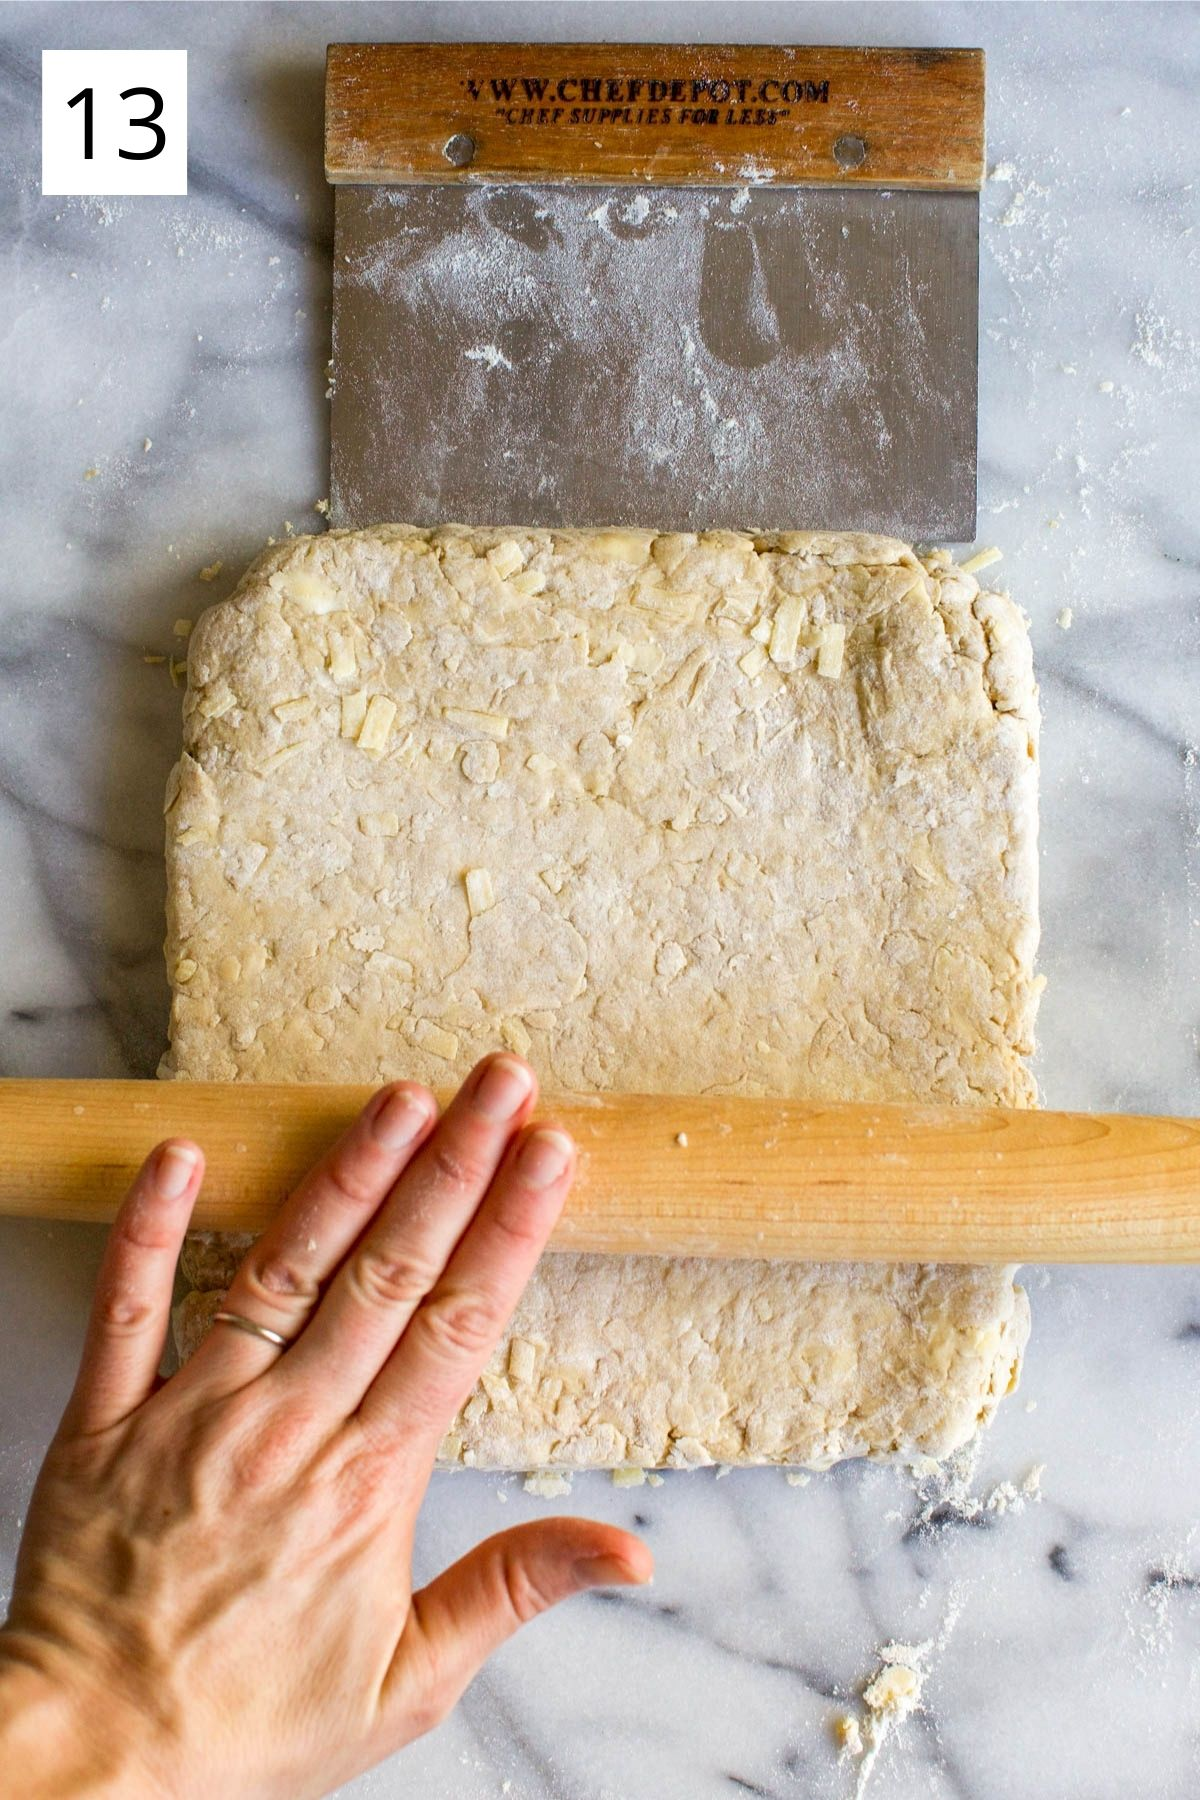 rolling dough into a square